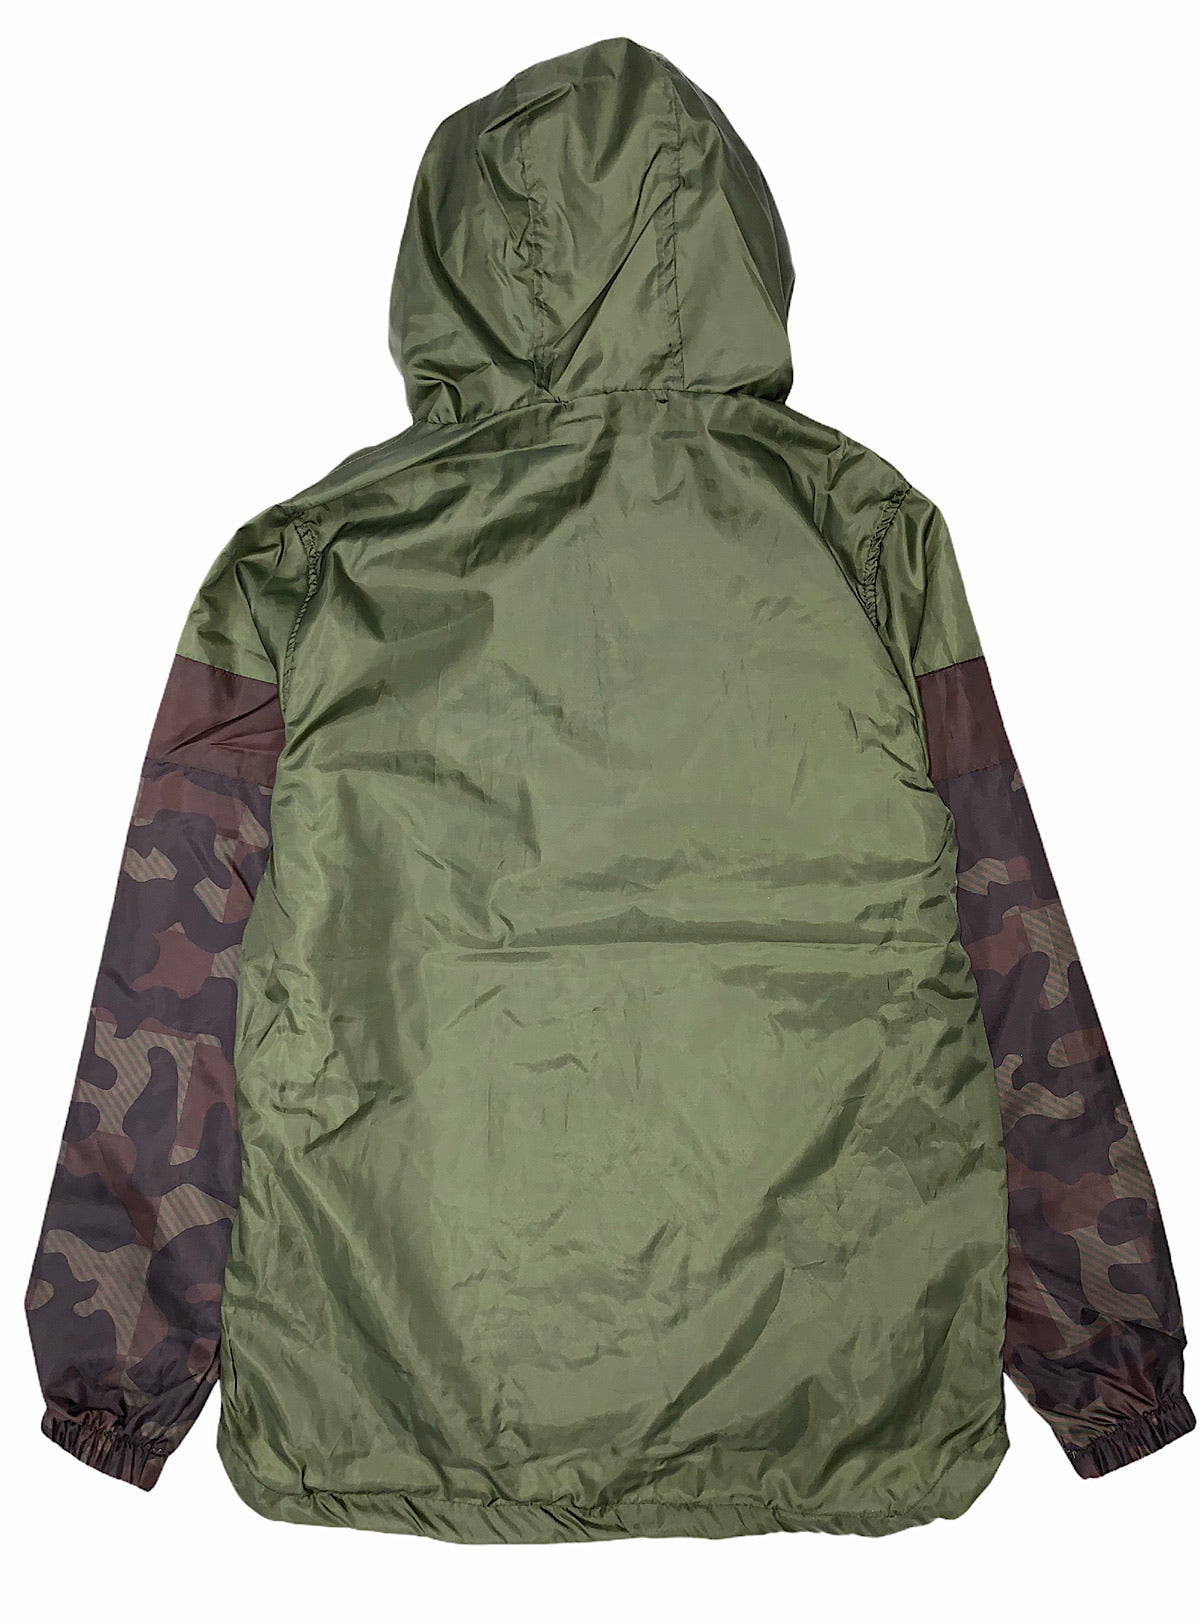 Rebel Minds Windbreaker - Camo - Olive